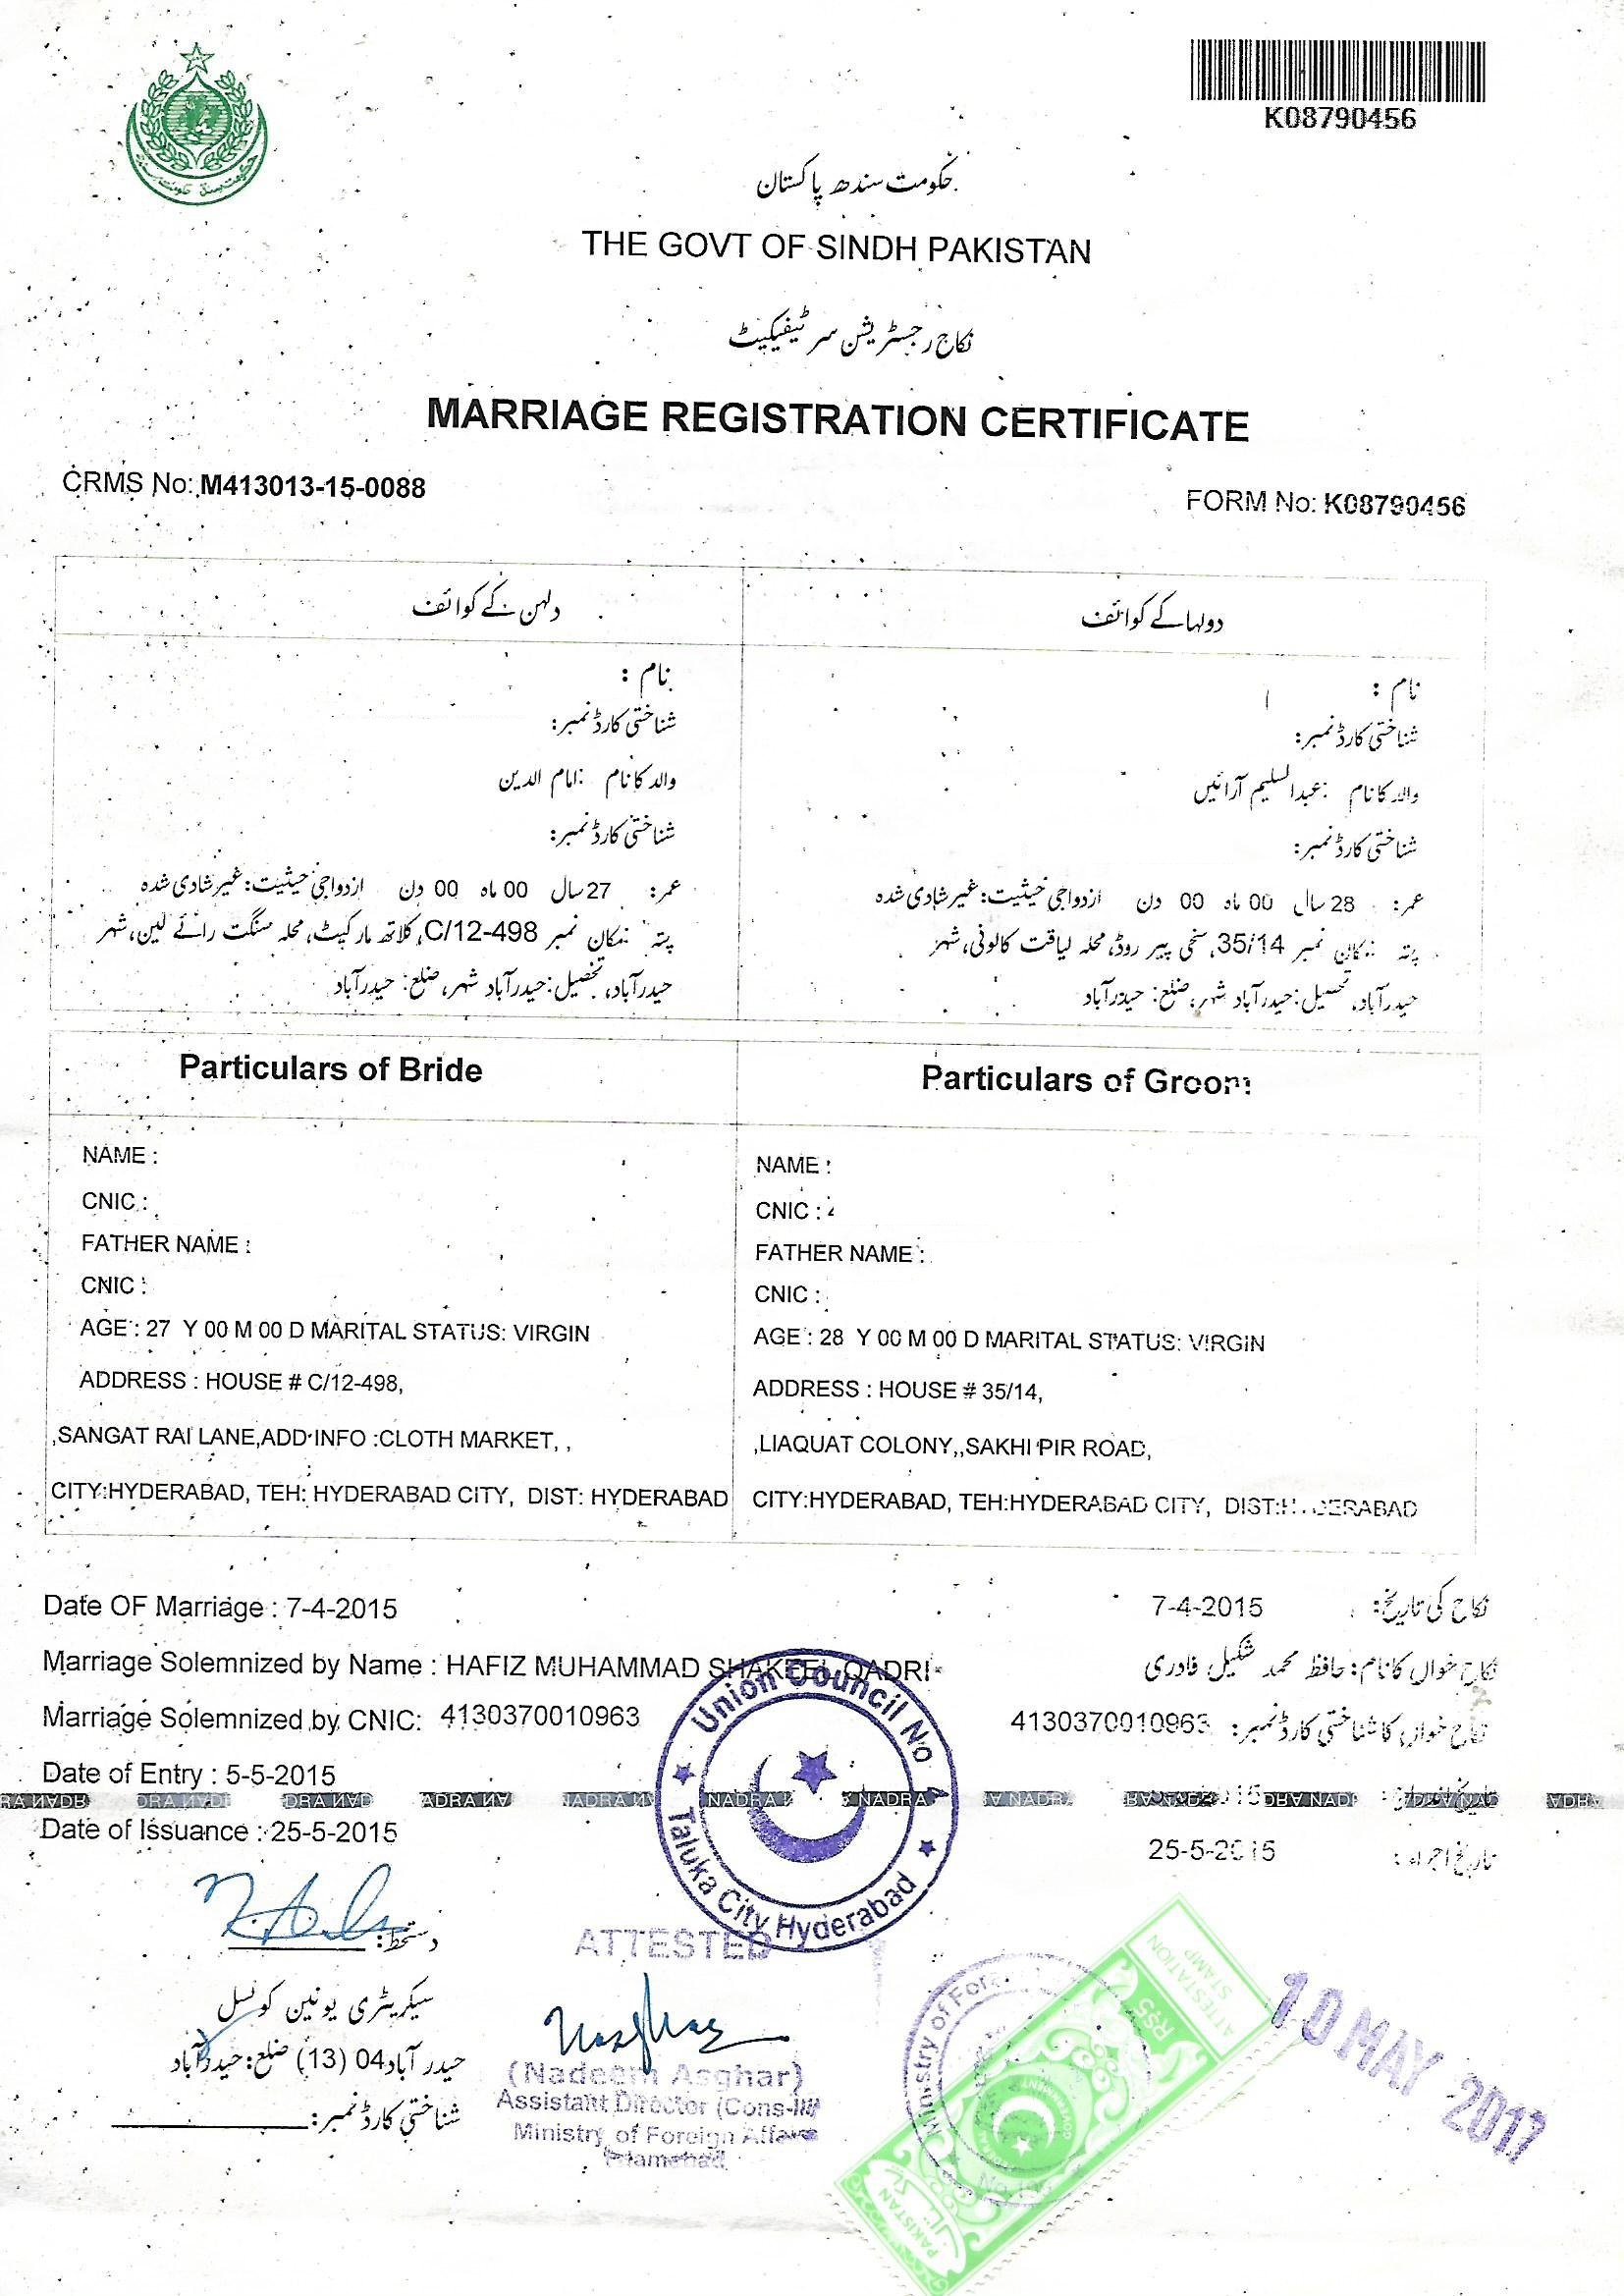 Degree Document Attestation From Uae Dubai Embassy Pakistan